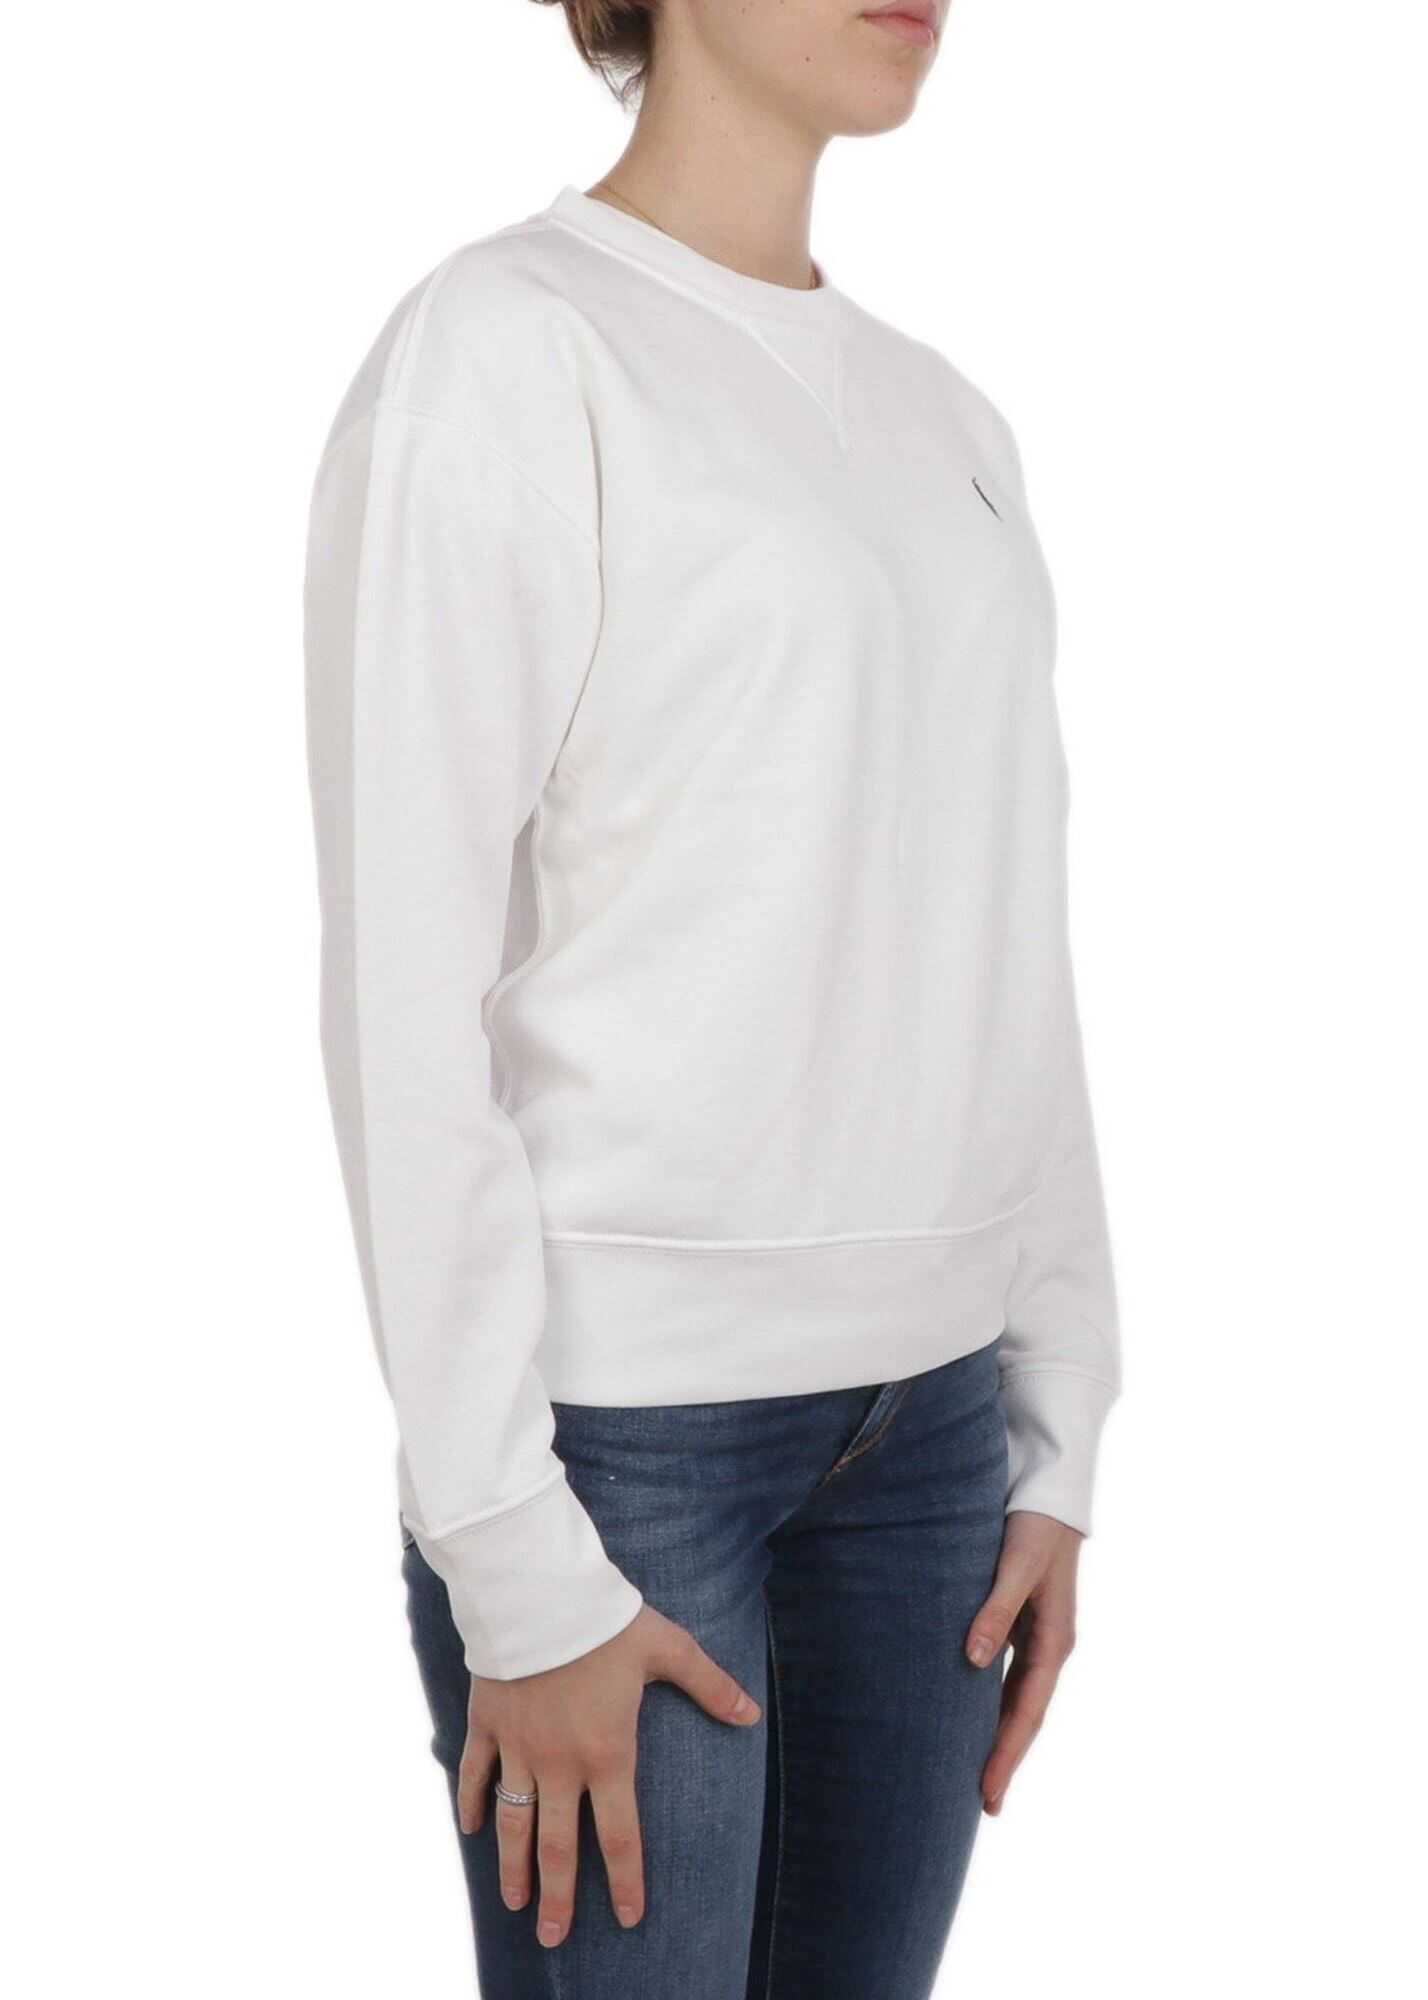 Ralph Lauren Logo Embroidery Sweatshirt White